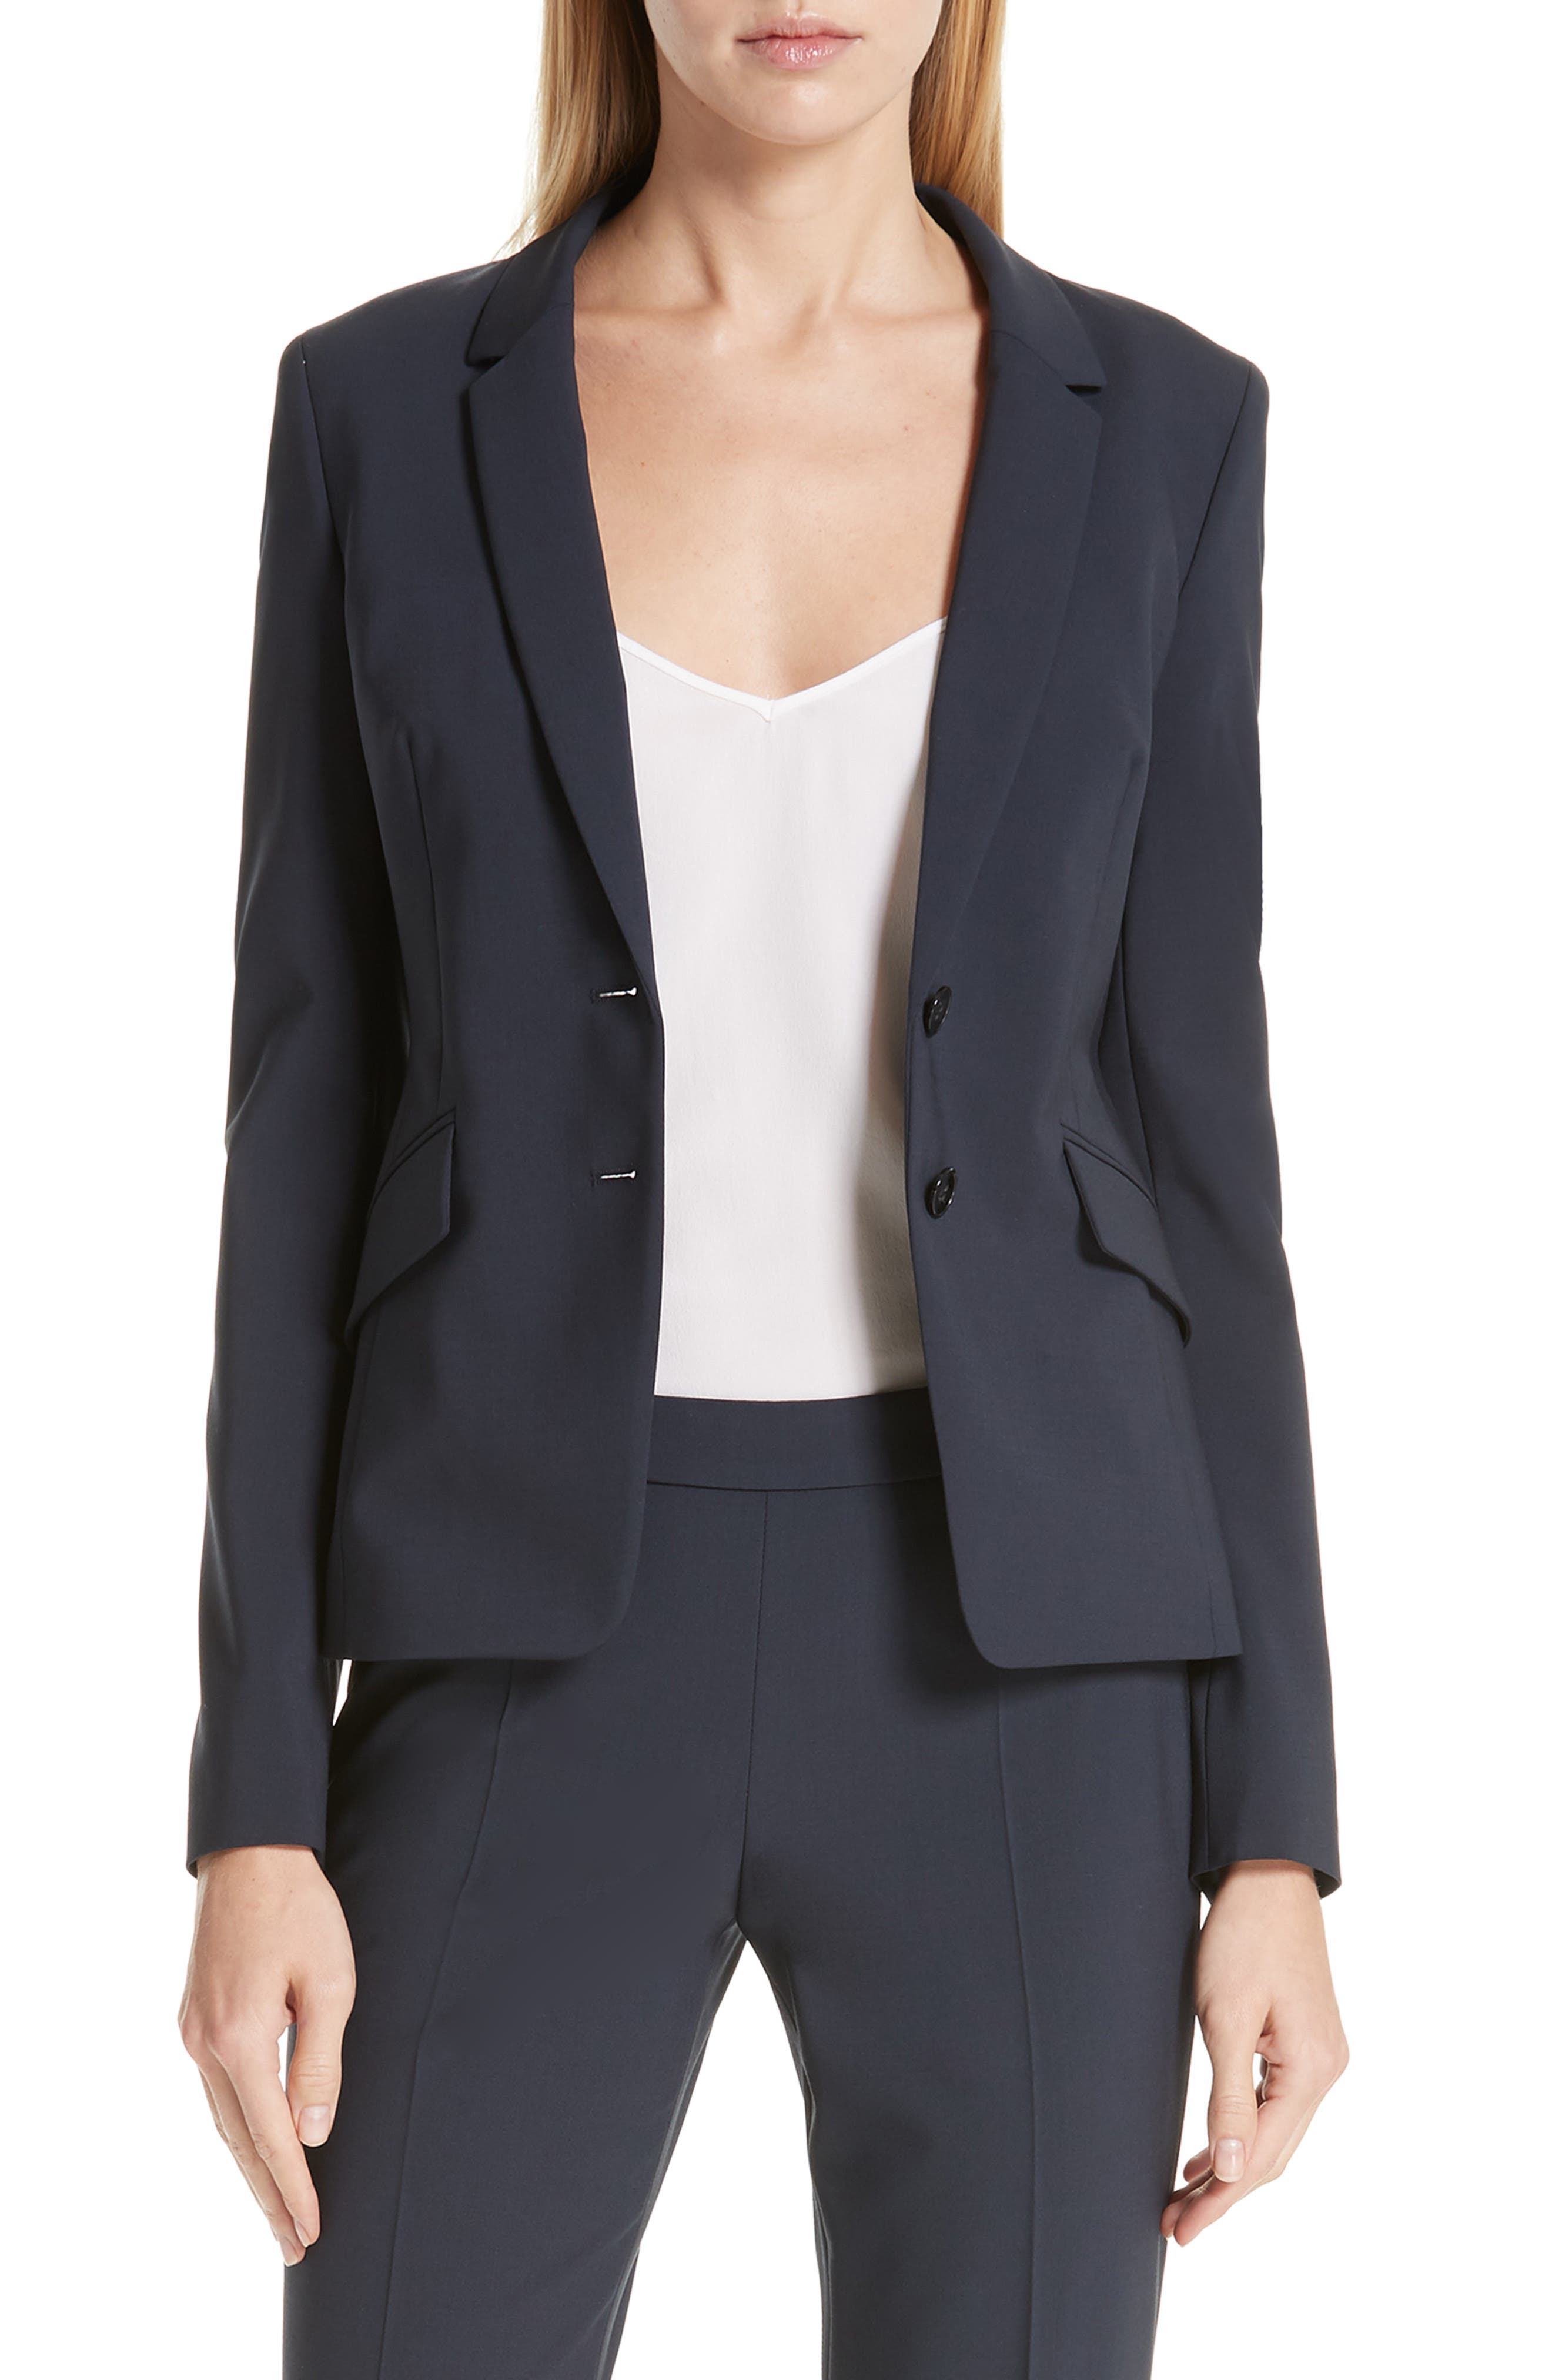 BOSS,                             Jiletara Stretch Wool Jacket,                             Main thumbnail 1, color,                             NAVY